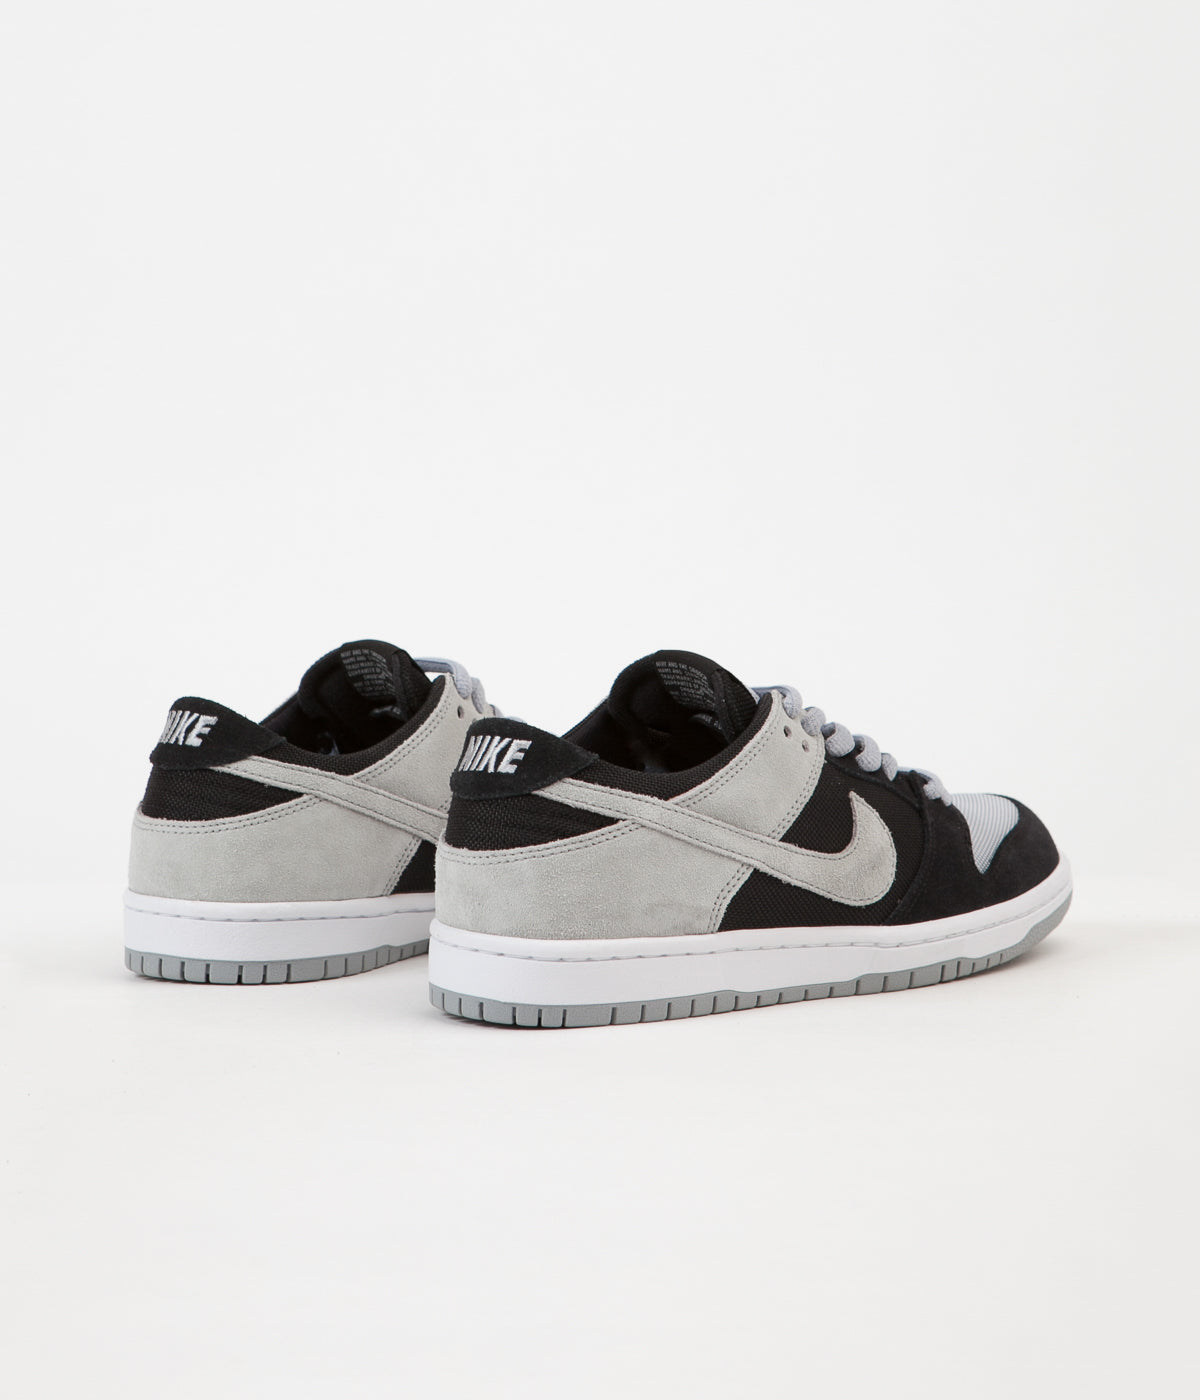 quality design de4e7 712de ... germany nike sb dunk low pro shoes black wolf grey white white 7797e  6bd7b